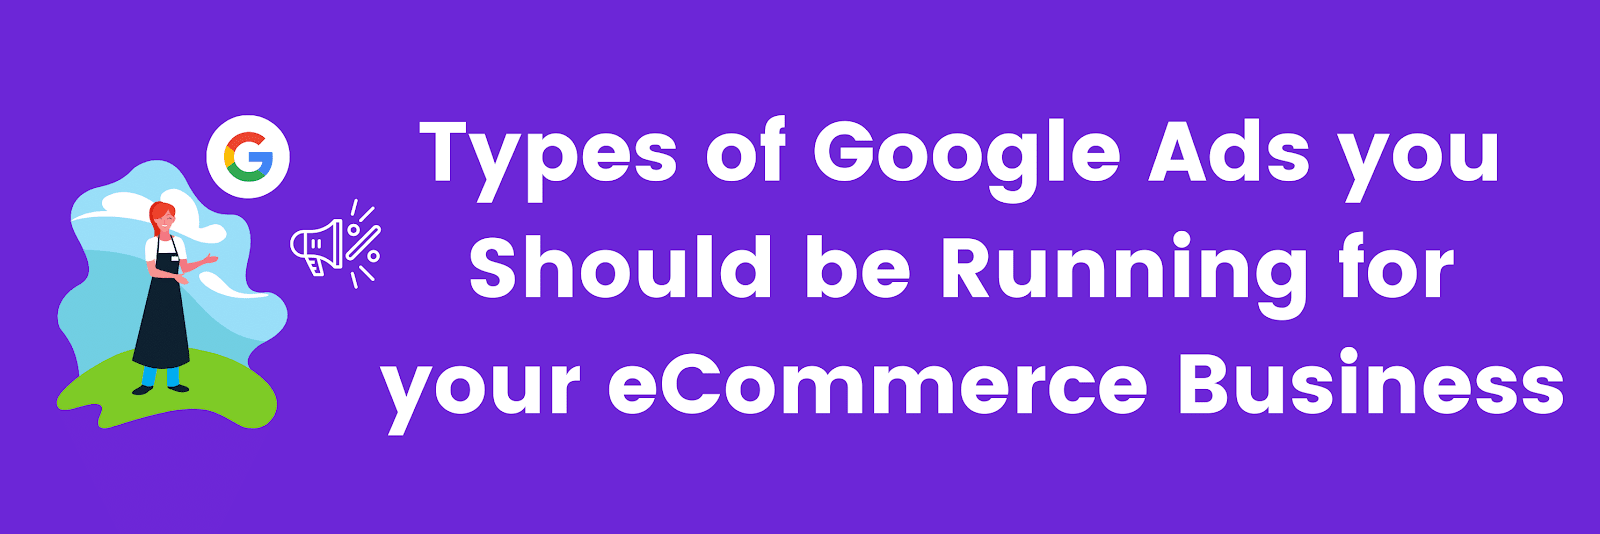 Types of Google Ads you Should be Running for your eCommerce Business